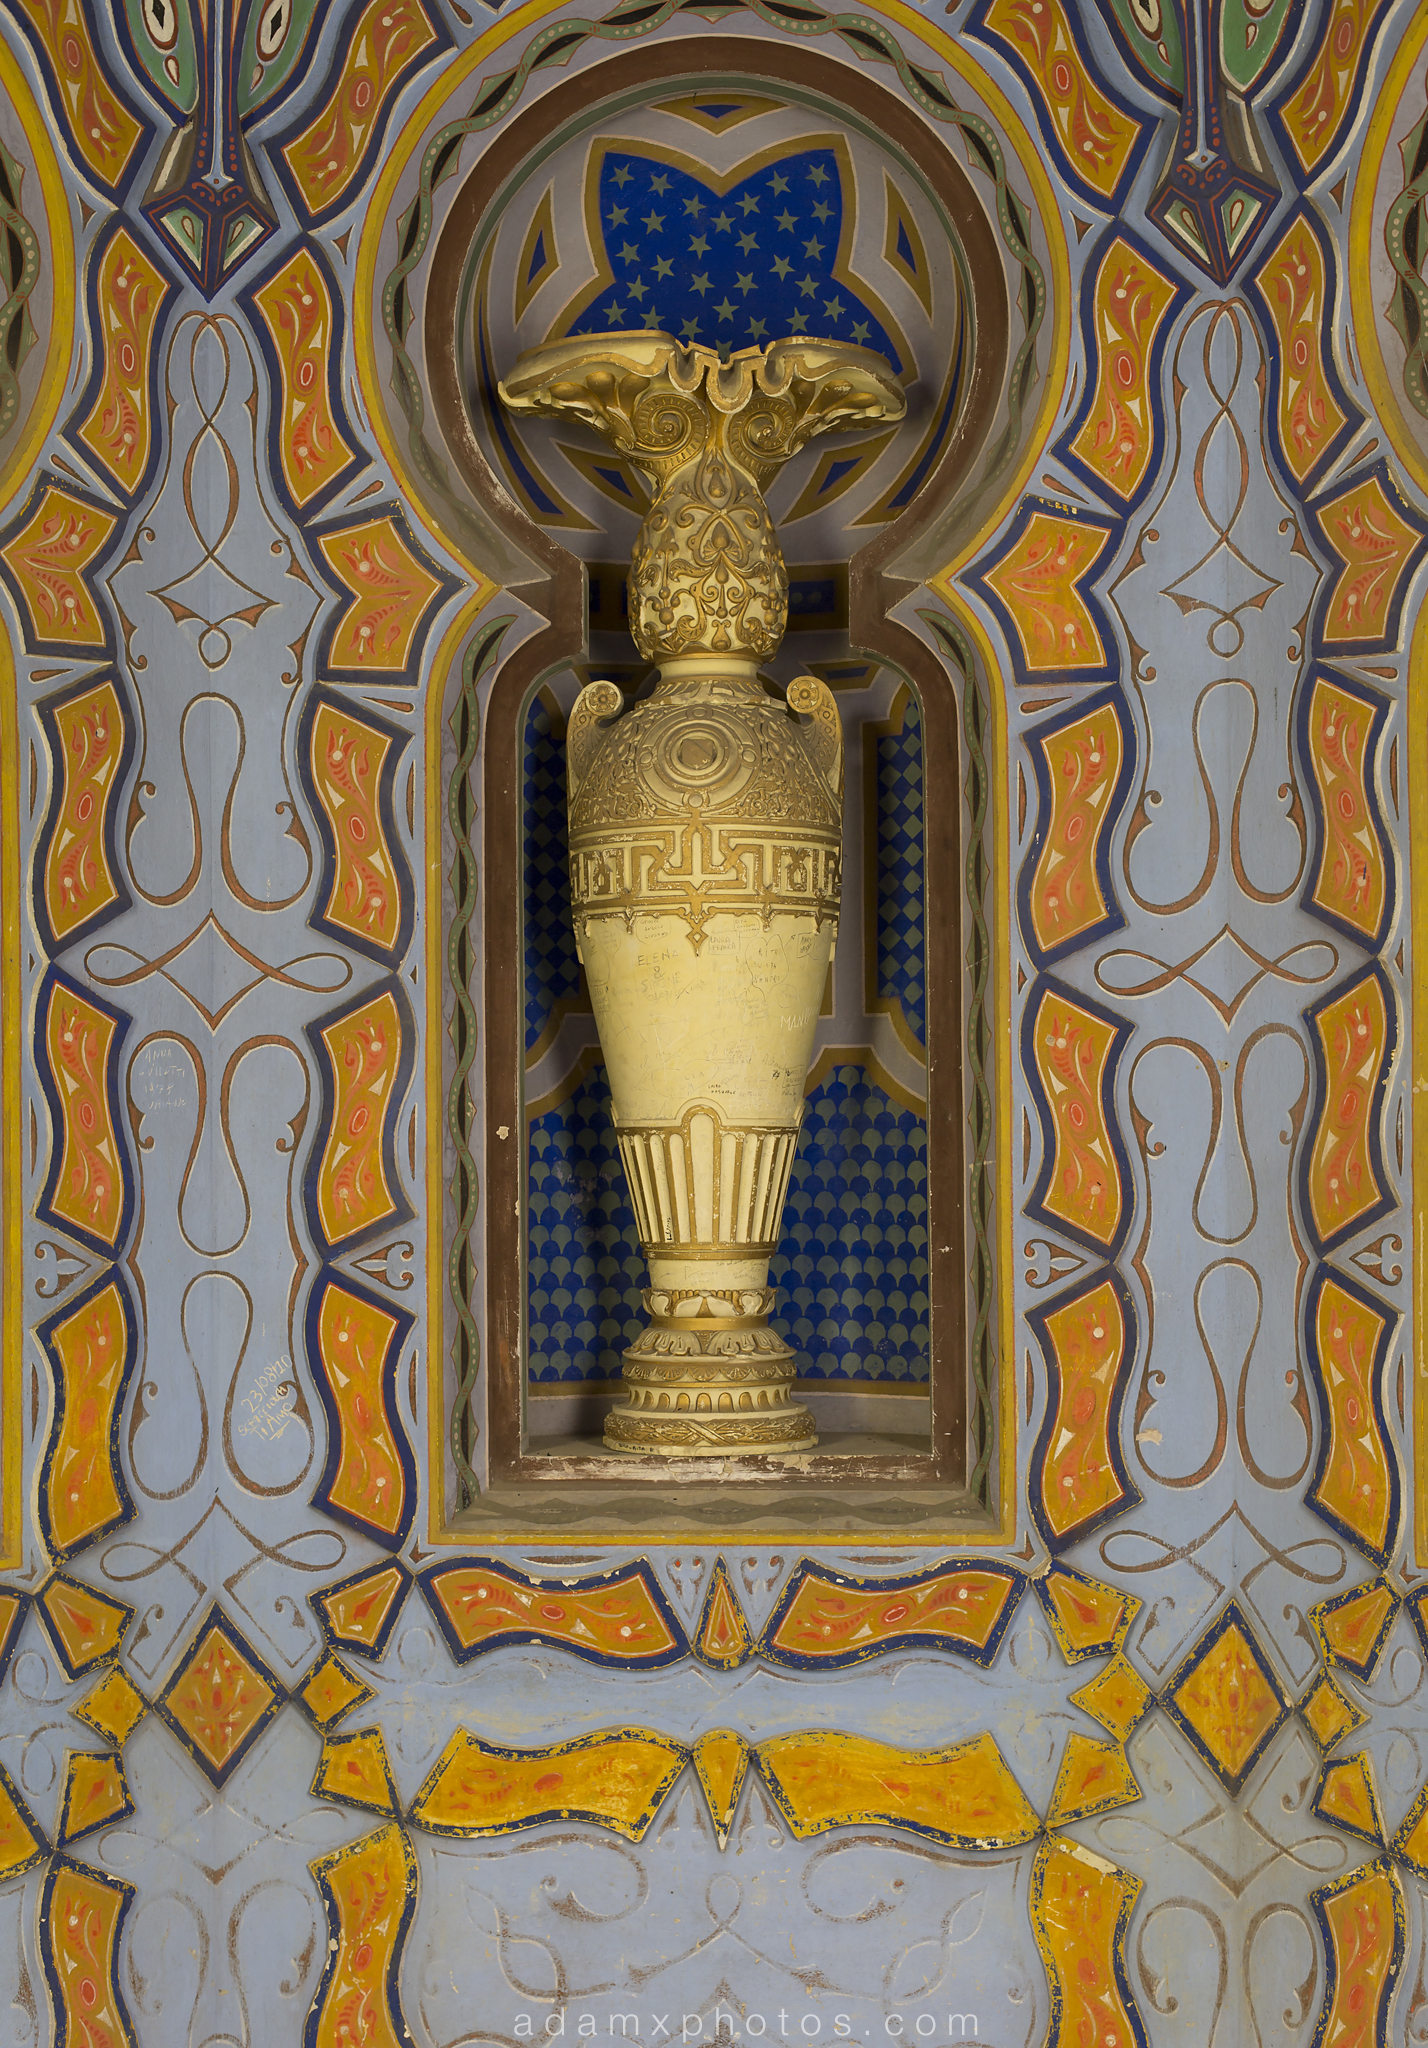 The Great White Rotunda detail urn painting painted tiles colours Non Plus Ultra Fairytale Castle of Sammezzano Castello di Sammezzano Urbex Adam X Urban Exploration photo photos report decay detail UE abandoned Ornate Moorish tiling tiled derelict unused empty disused decay decayed decaying grimy grime